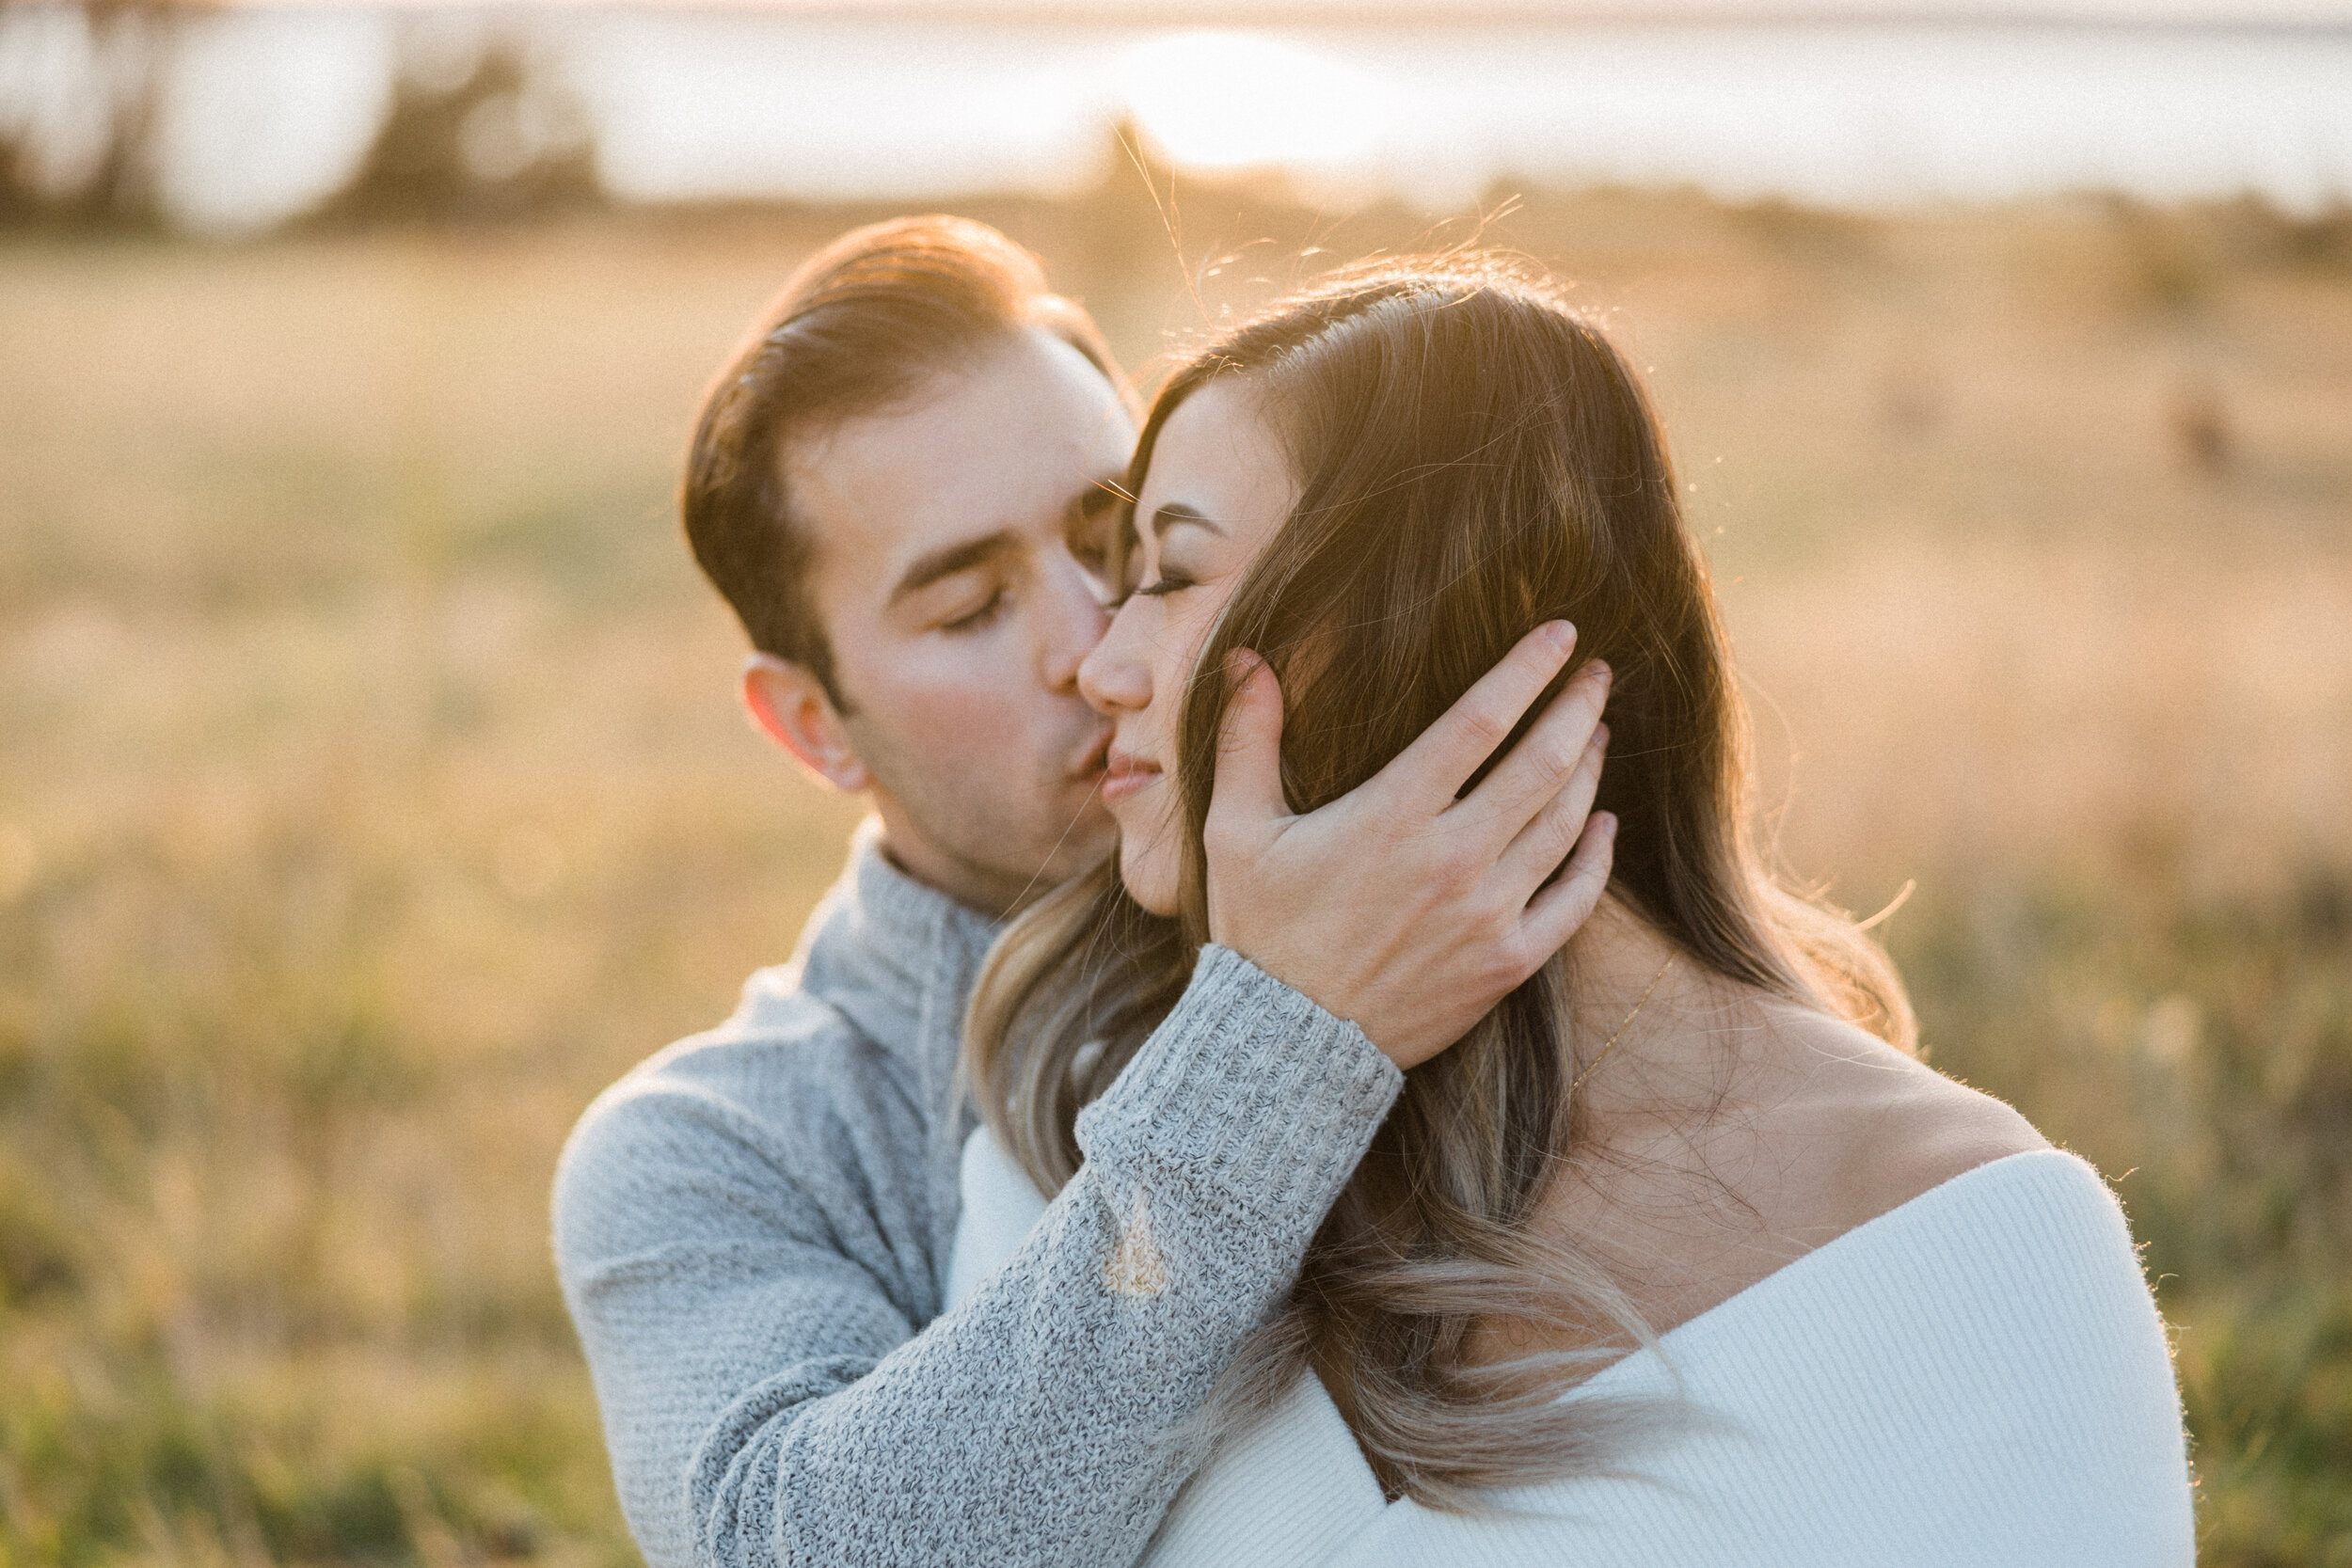 Lanna + Pavel - Discovery Park Engagement